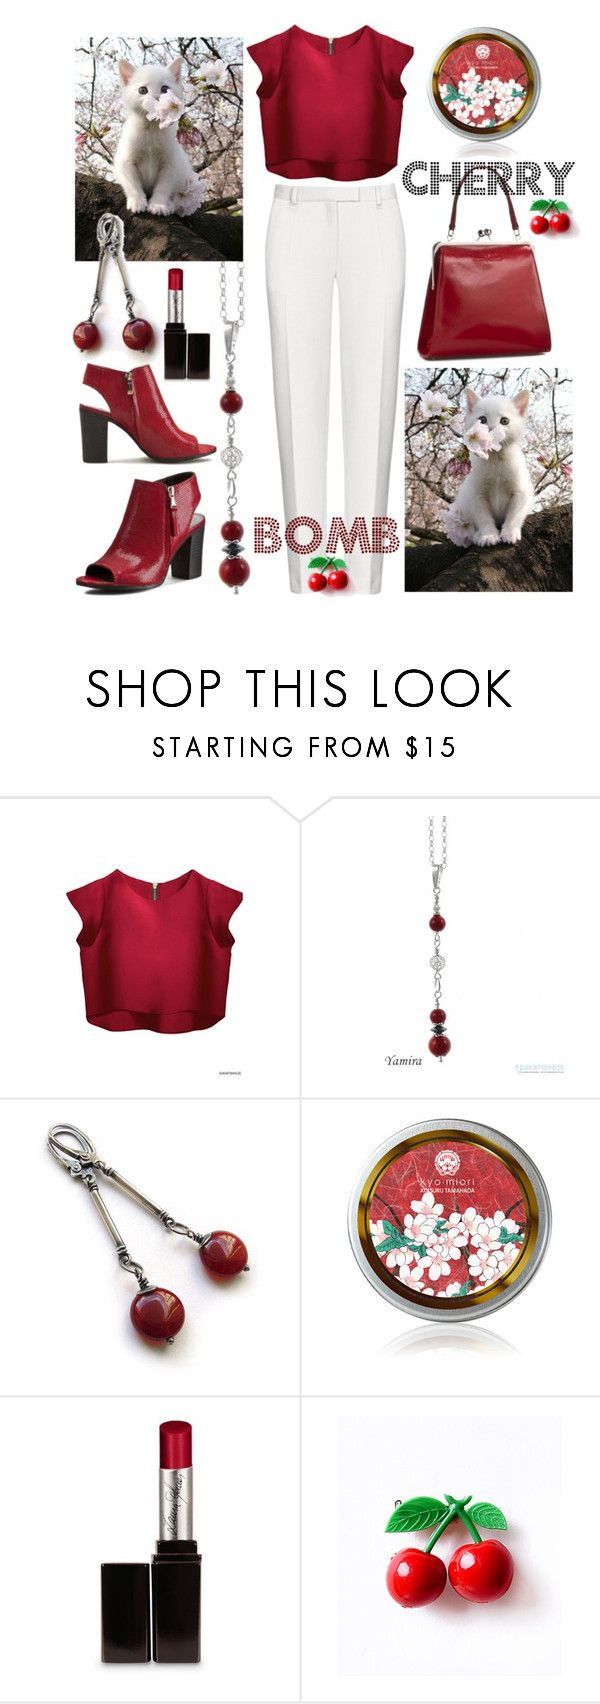 """Cherry kitty bomb ;-)"" by amisha73 ❤ liked on Polyvore featuring Laura Mercier"